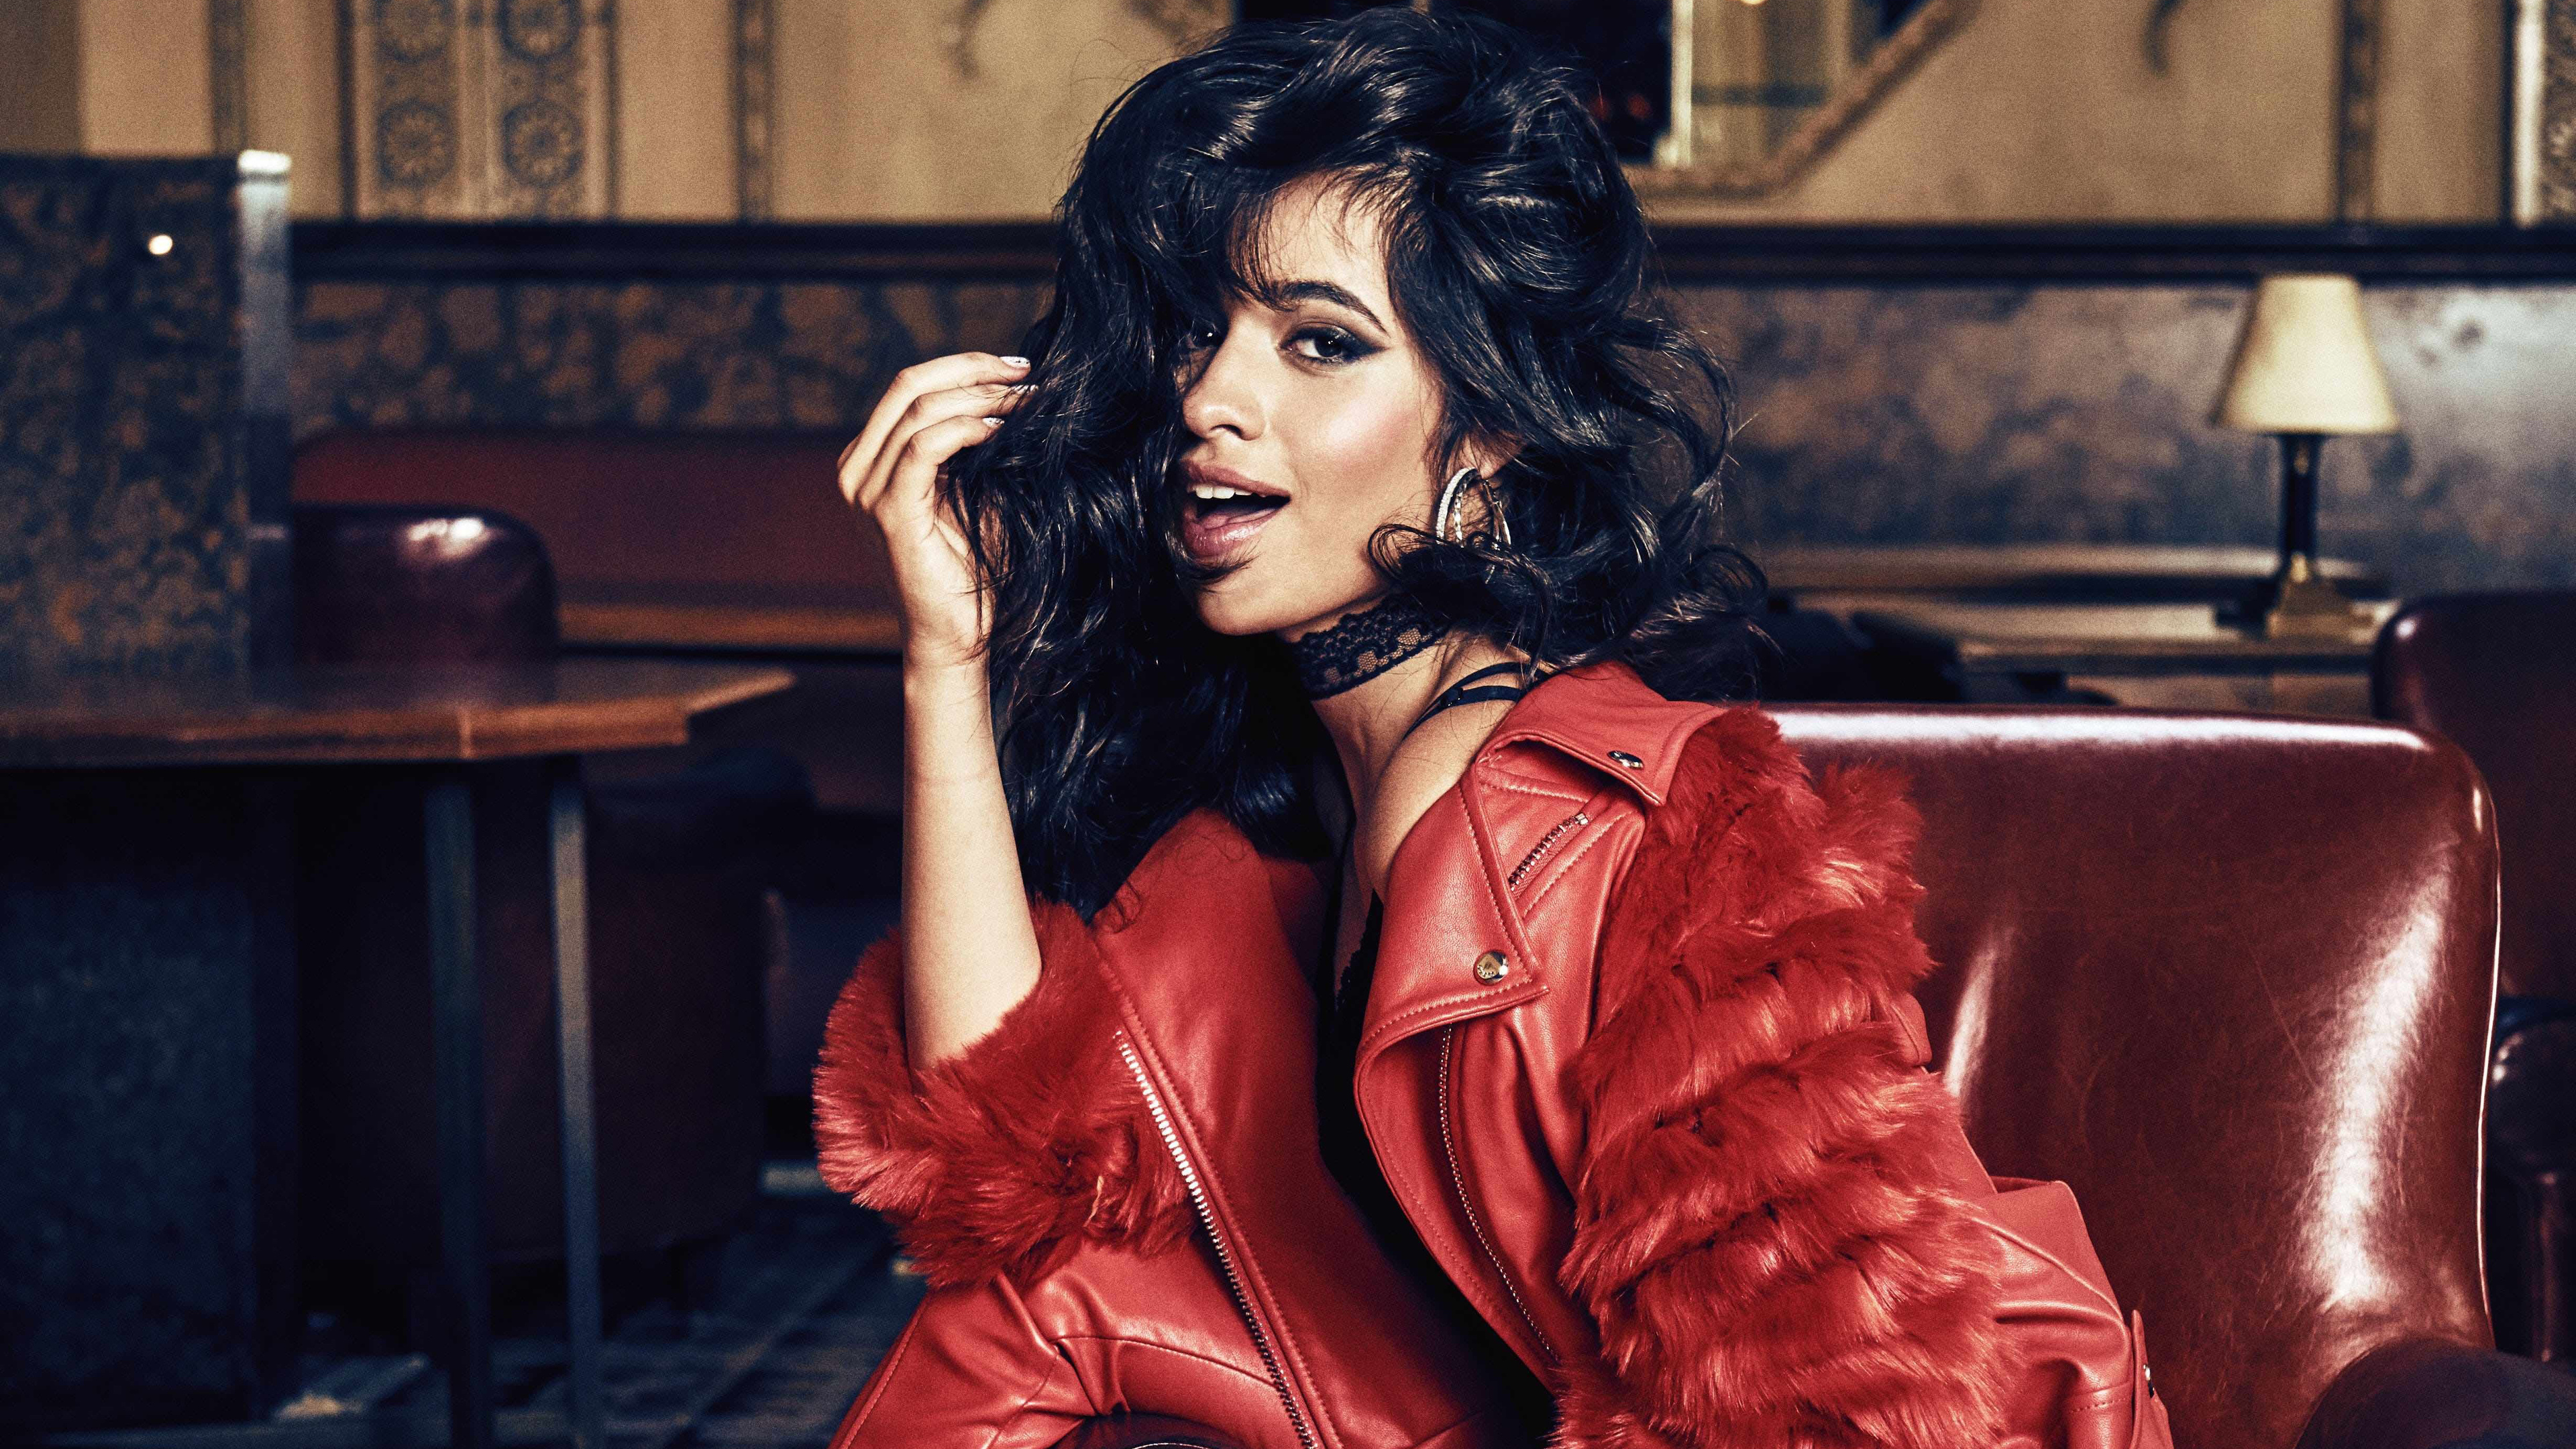 camila cabello 2019 4k 1558220643 - Camila Cabello 2019 4k - singer wallpapers, music wallpapers, hd-wallpapers, girls wallpapers, celebrities wallpapers, camila cabello wallpapers, 4k-wallpapers